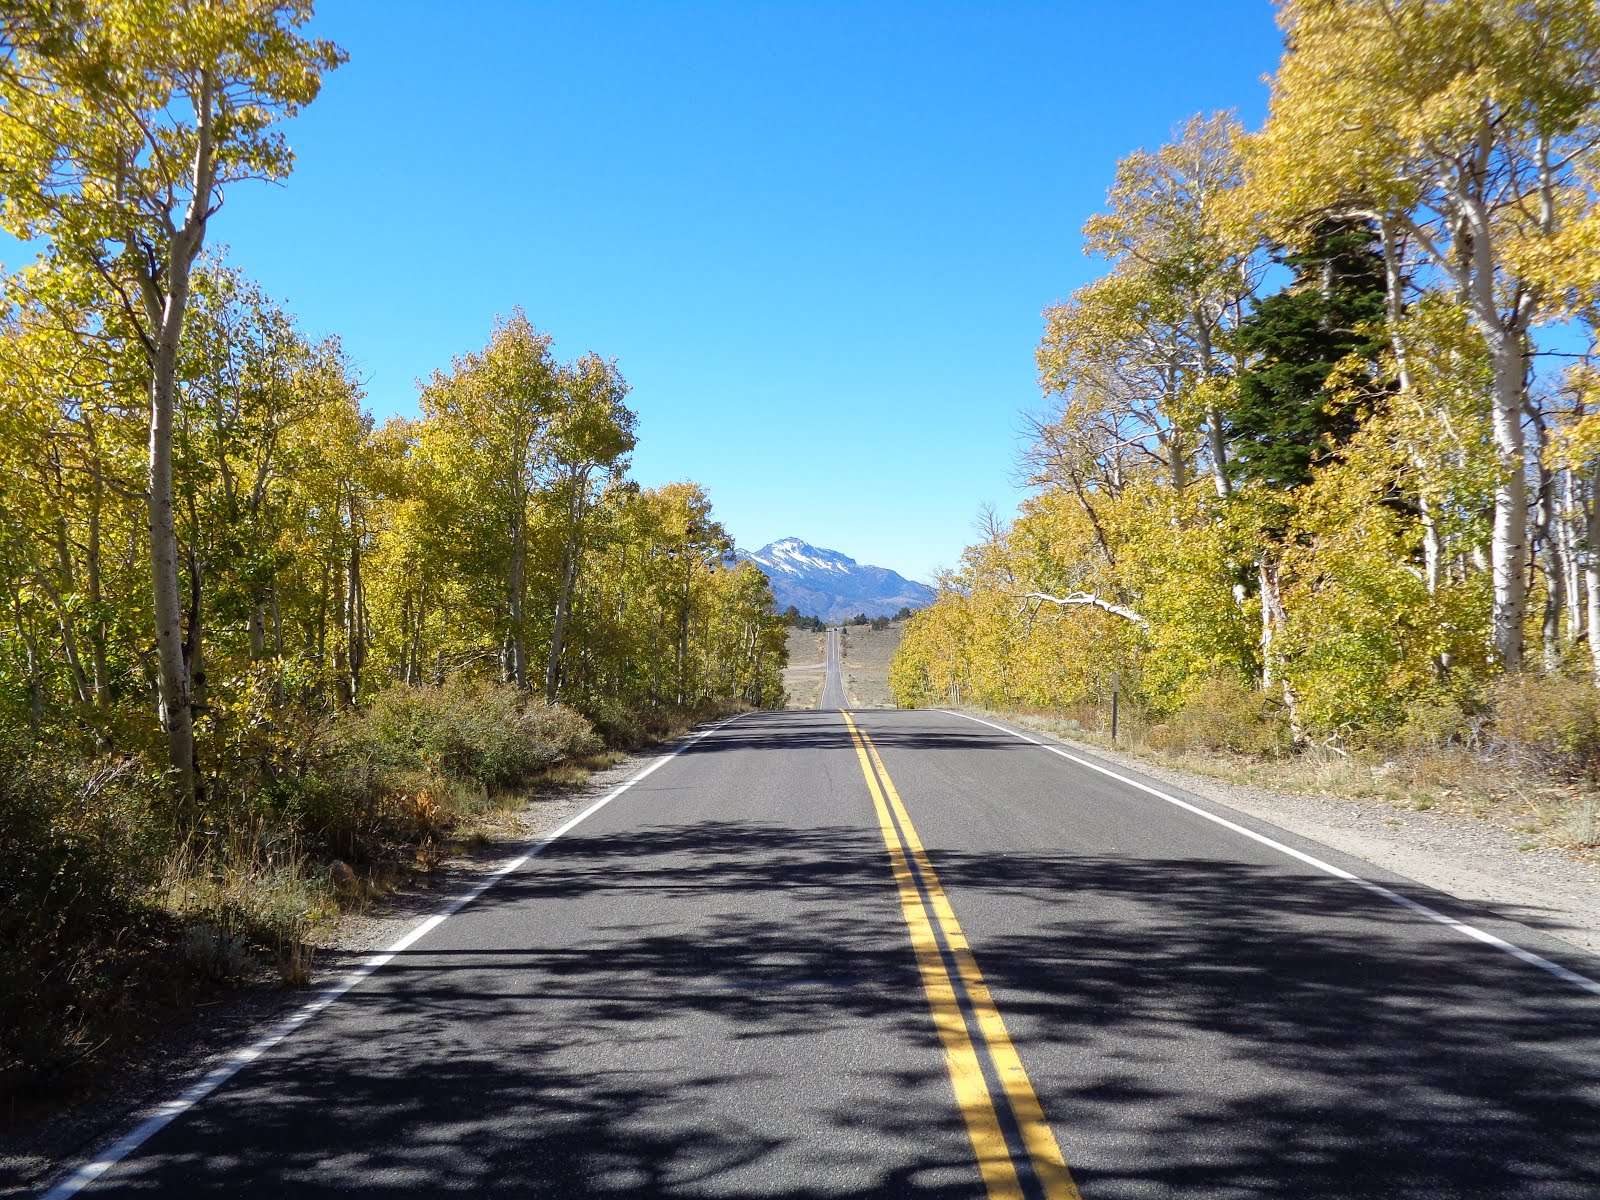 Autumn on State Route 89